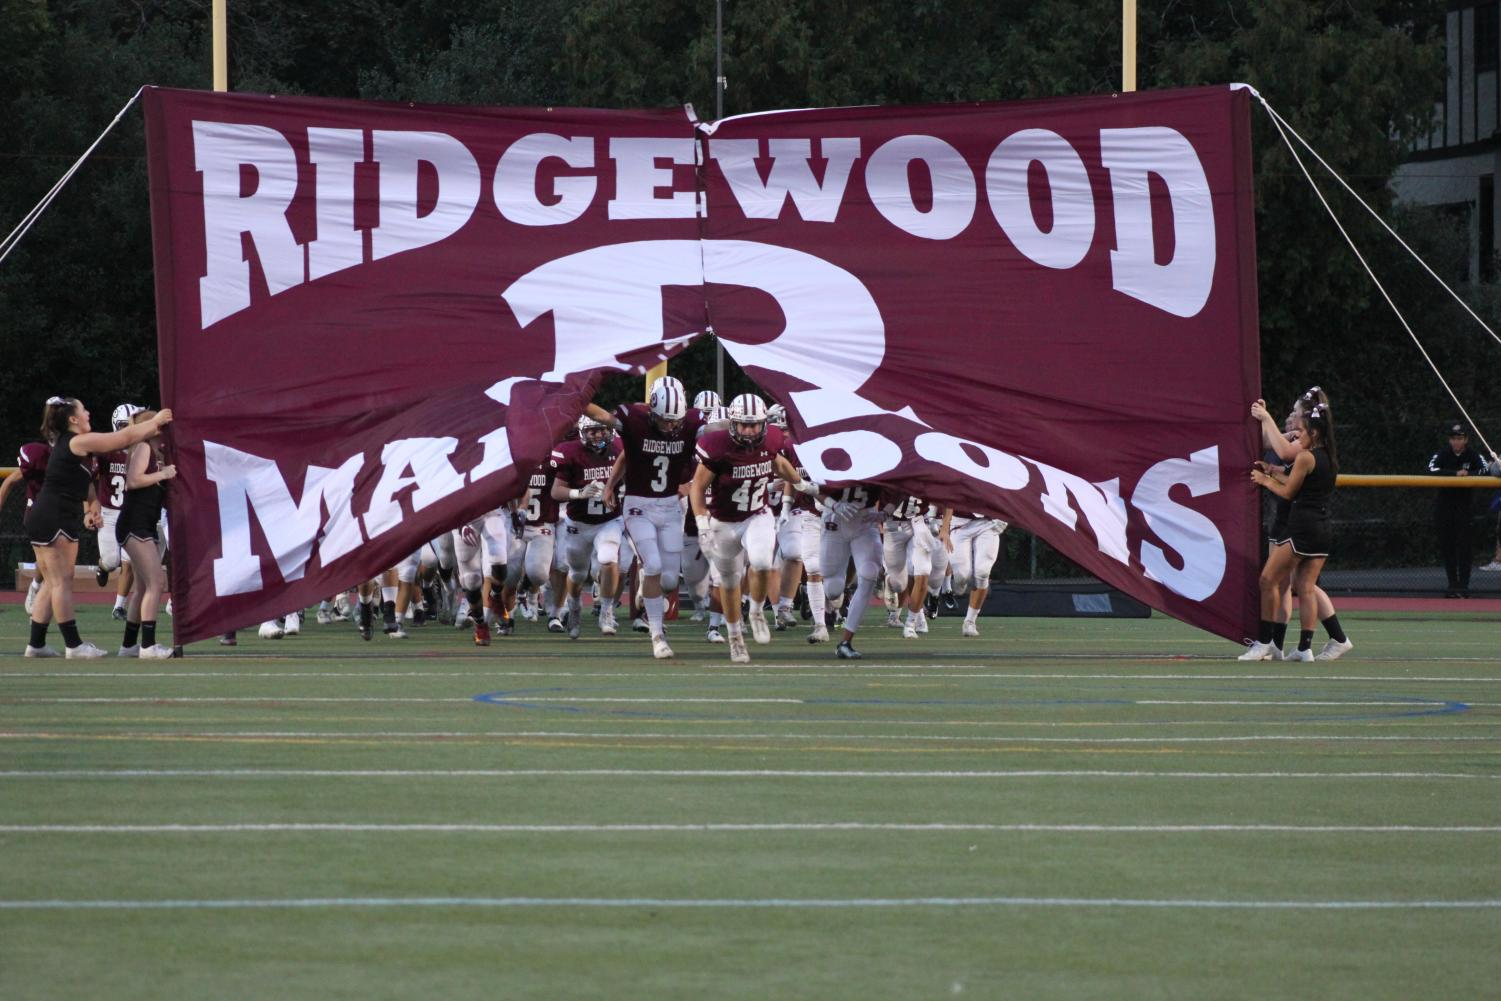 The Maroons take the field.